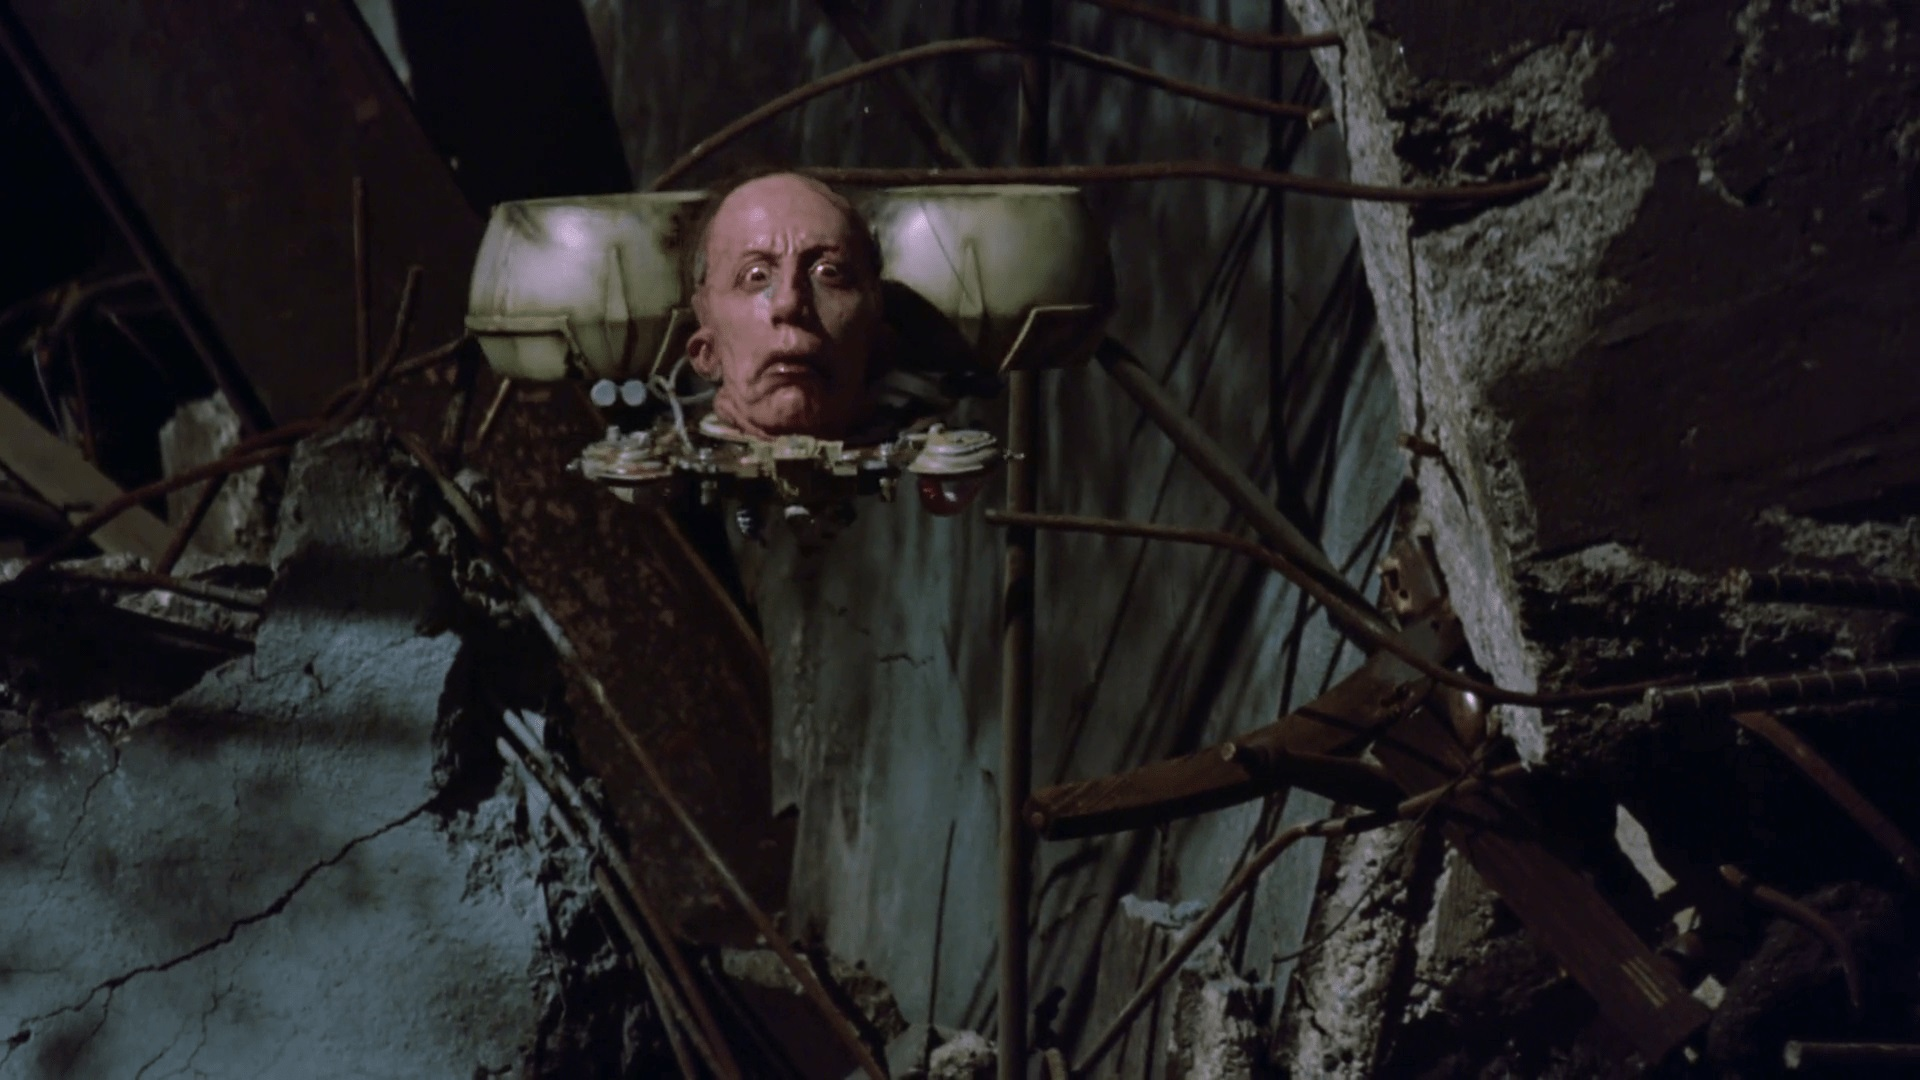 Frank Collison as the villainous Srpug reduced to no more than a head on an antigravity disc in Dollman (1990)